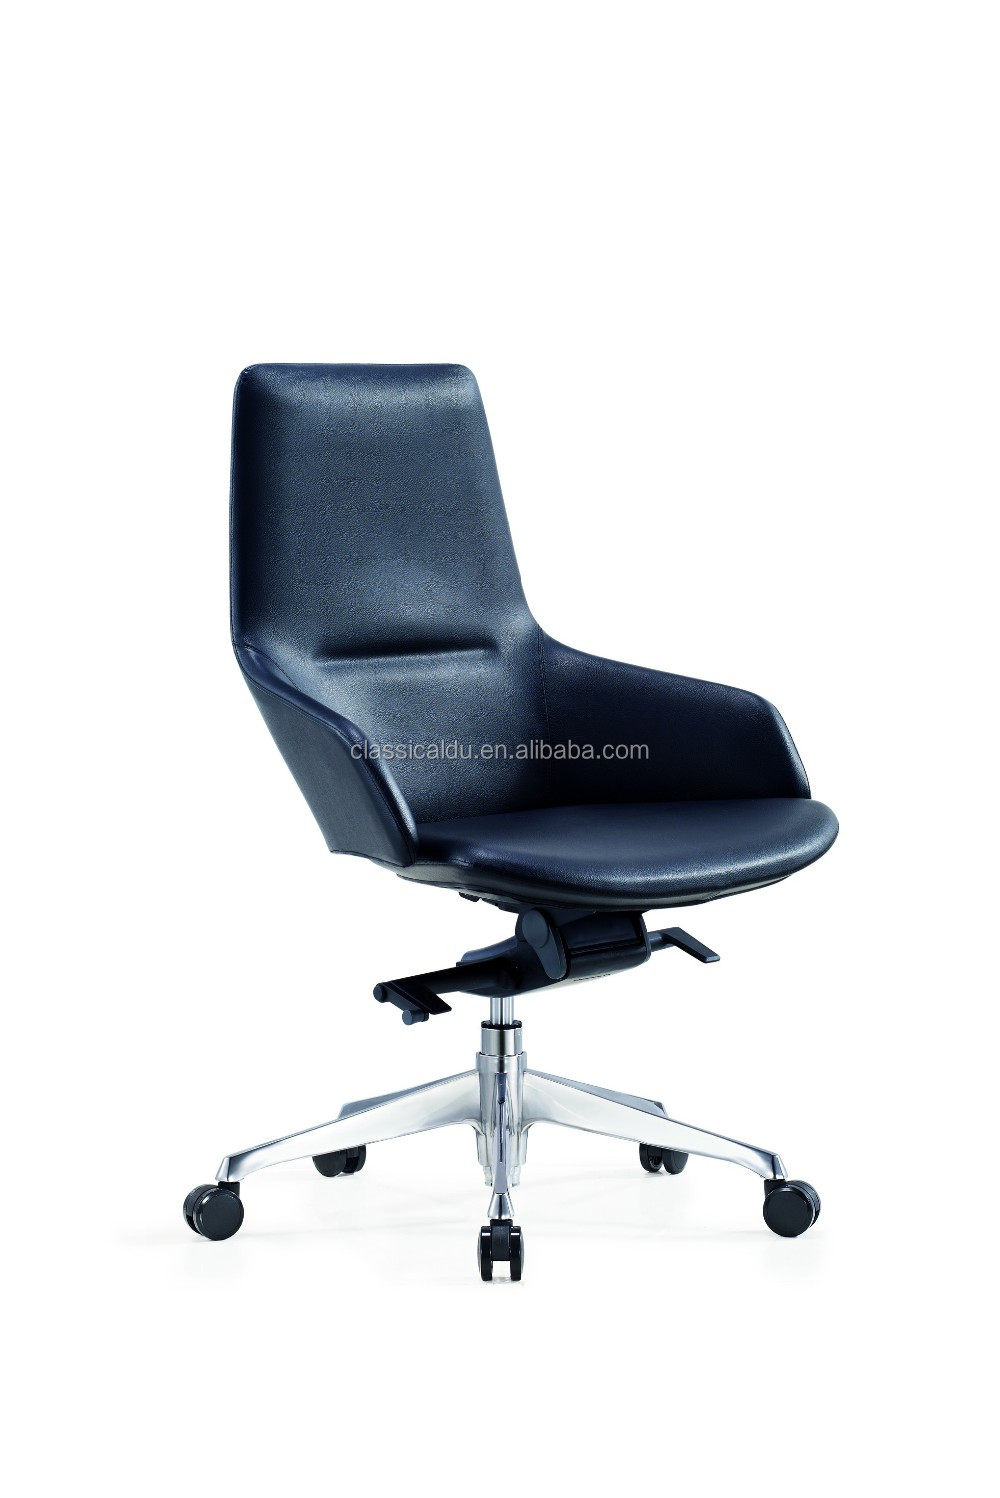 New Design Arper Office Chair, Comfortable Aston Office Chair, Modern  Leather Office Chair